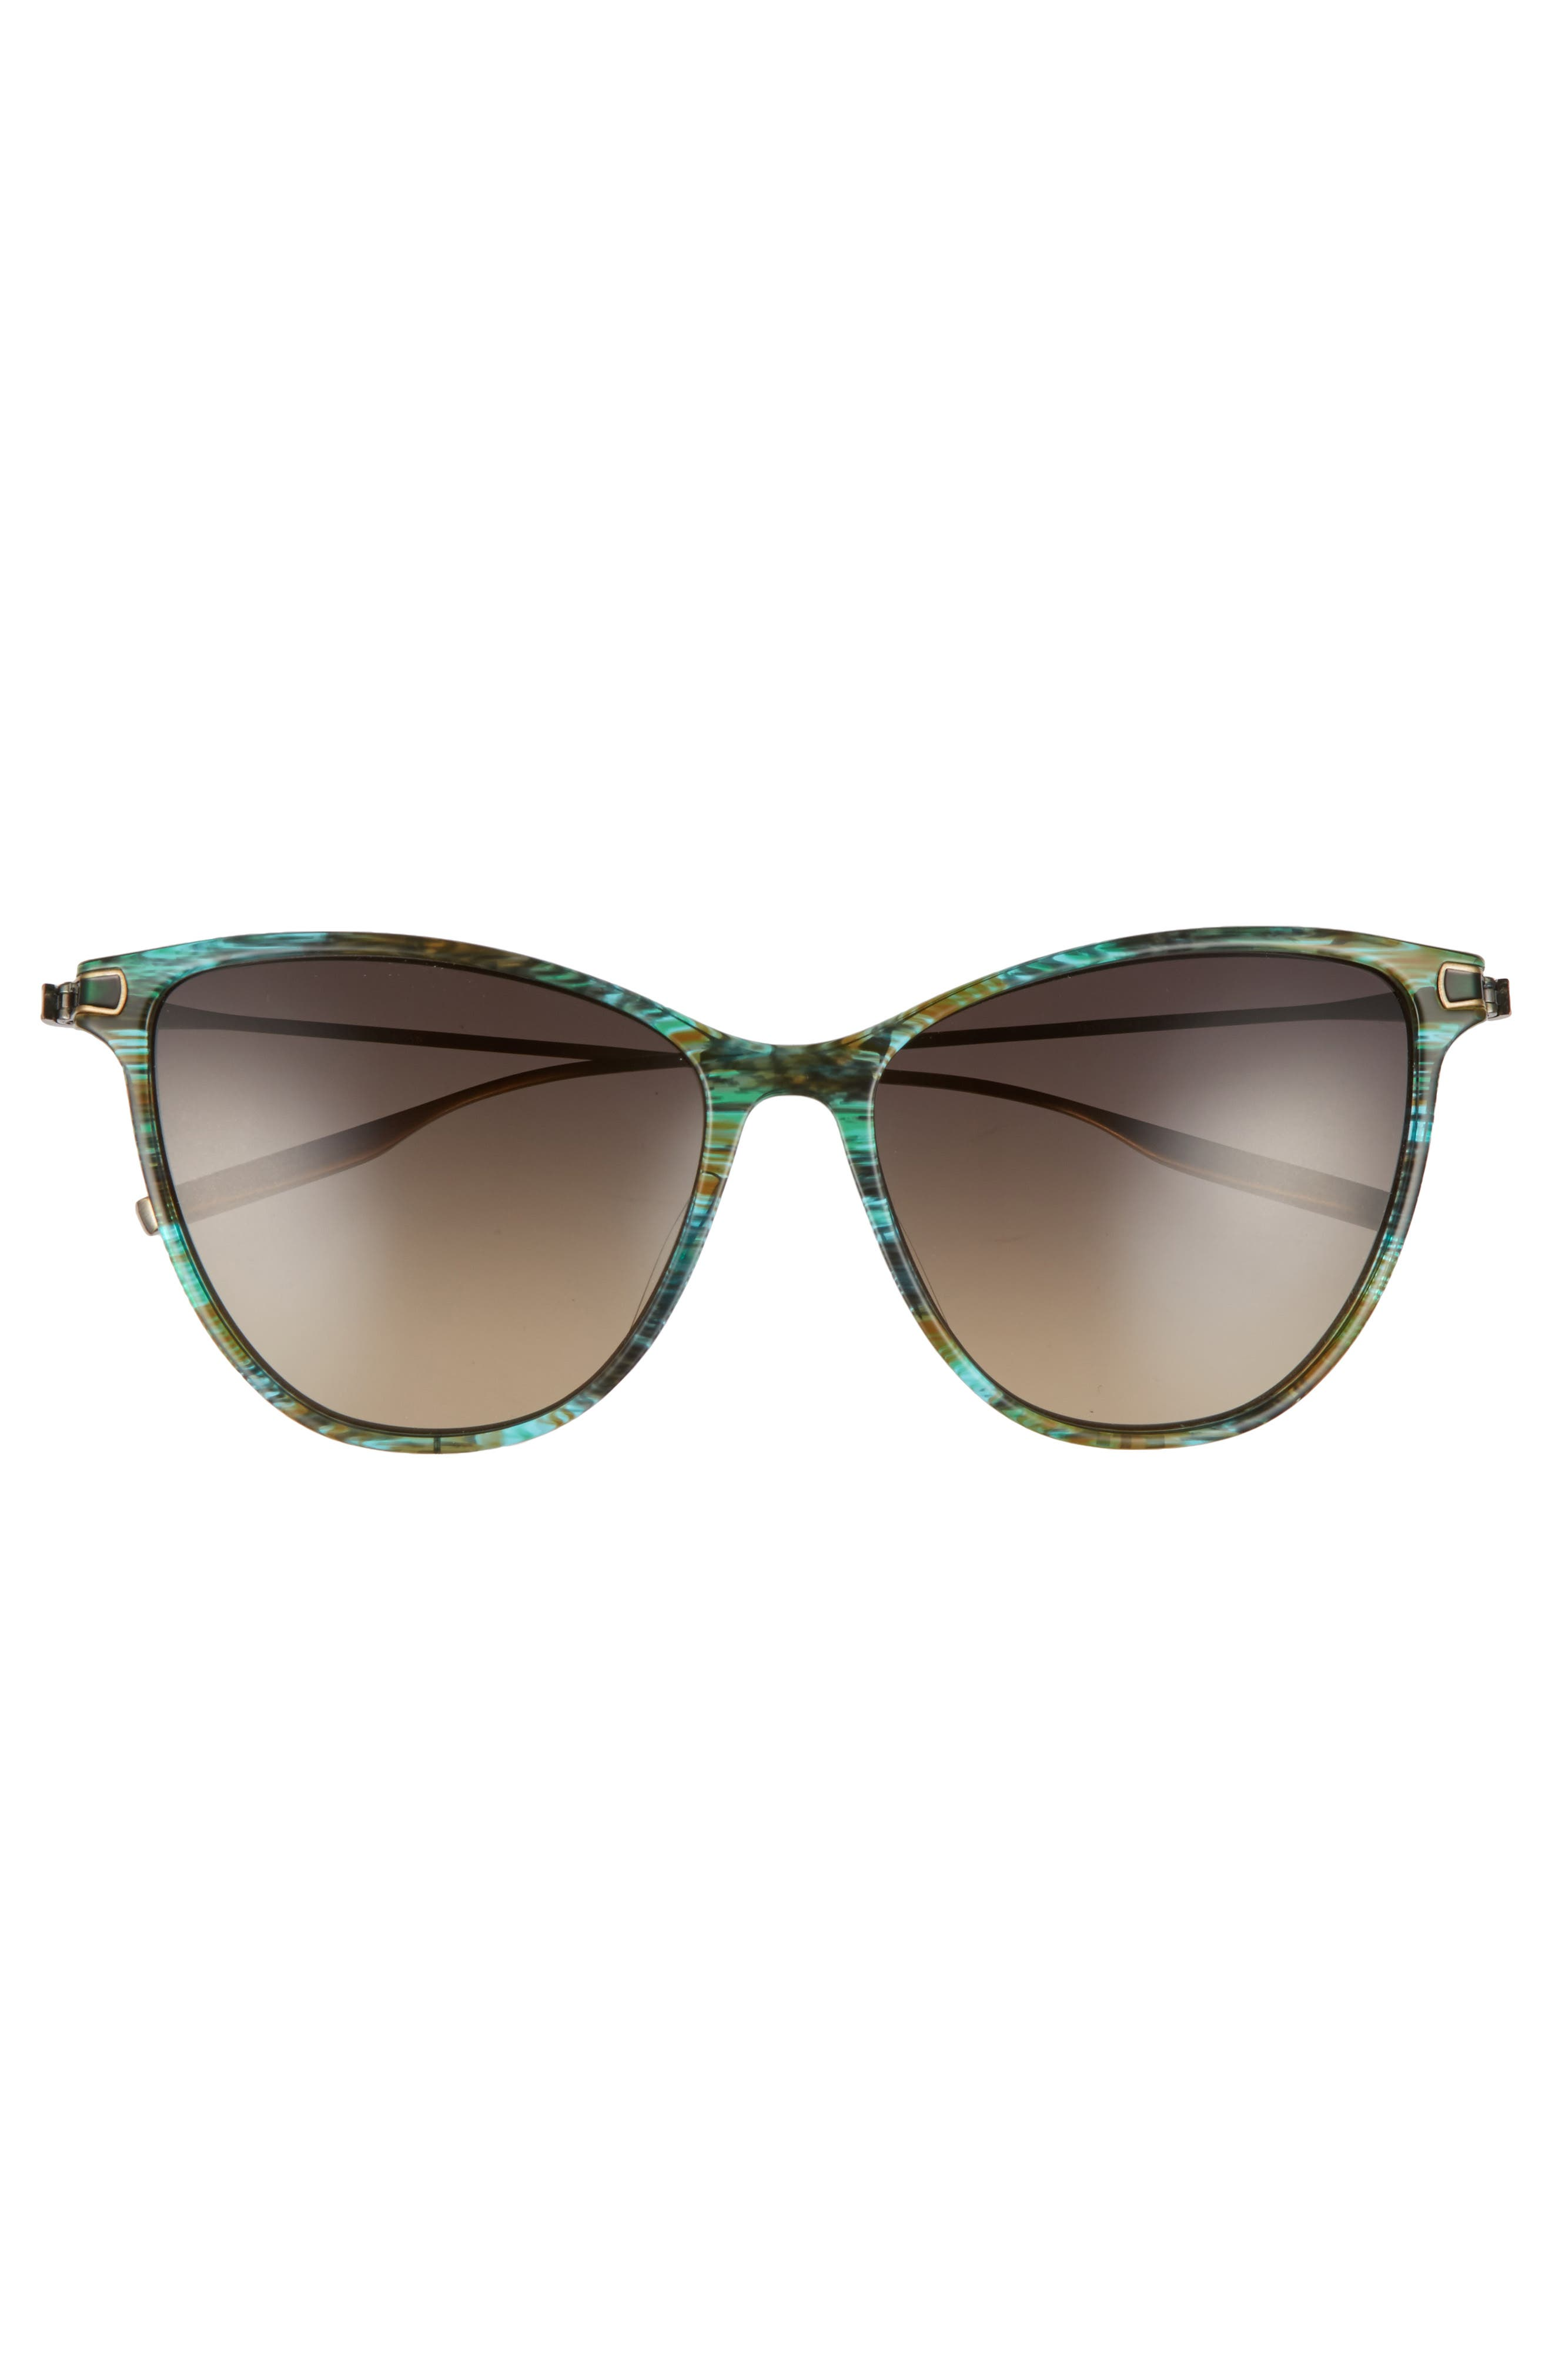 Nia 58mm Polarized Cat Eye Sunglasses,                             Alternate thumbnail 3, color,                             Sandy Sea Green